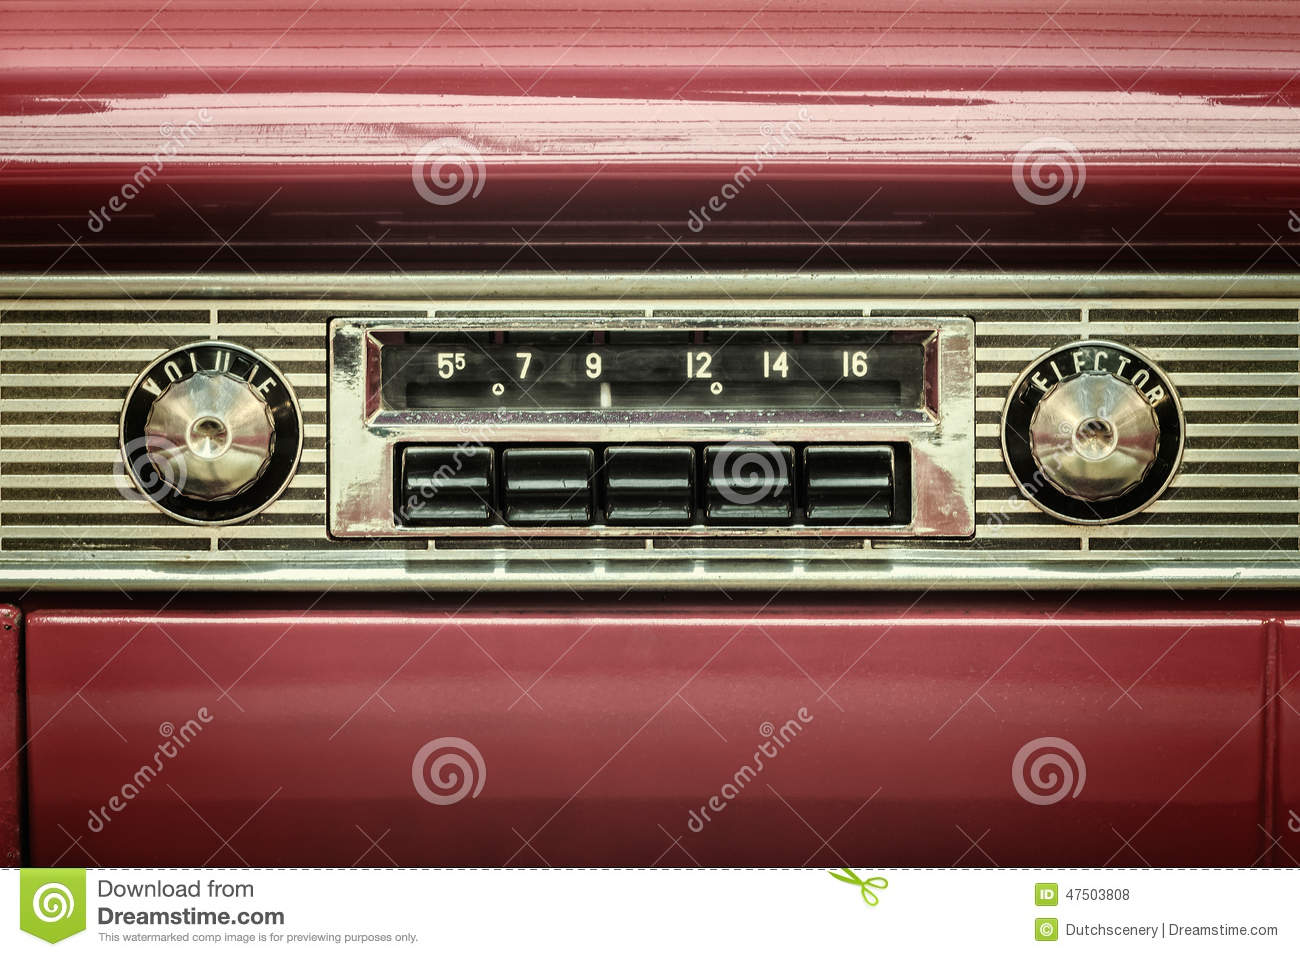 Download Retro Styled Image Of An Old Car Radio Stock Photo - Image of detail, ancient: 47503808